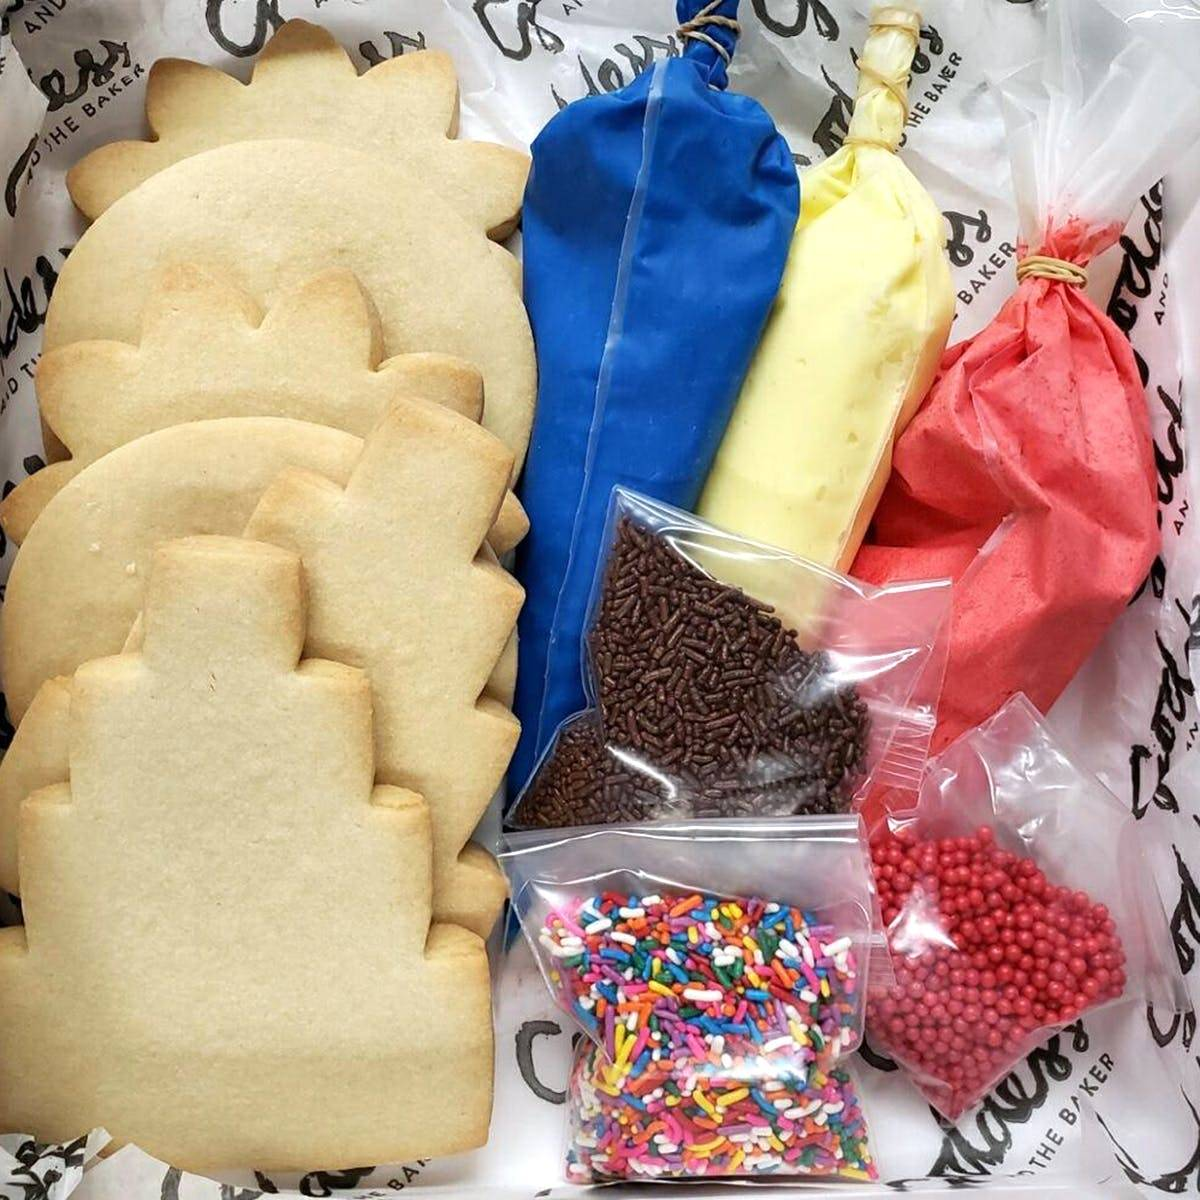 The Goddess and Grocer - Cookie Decorating Kit